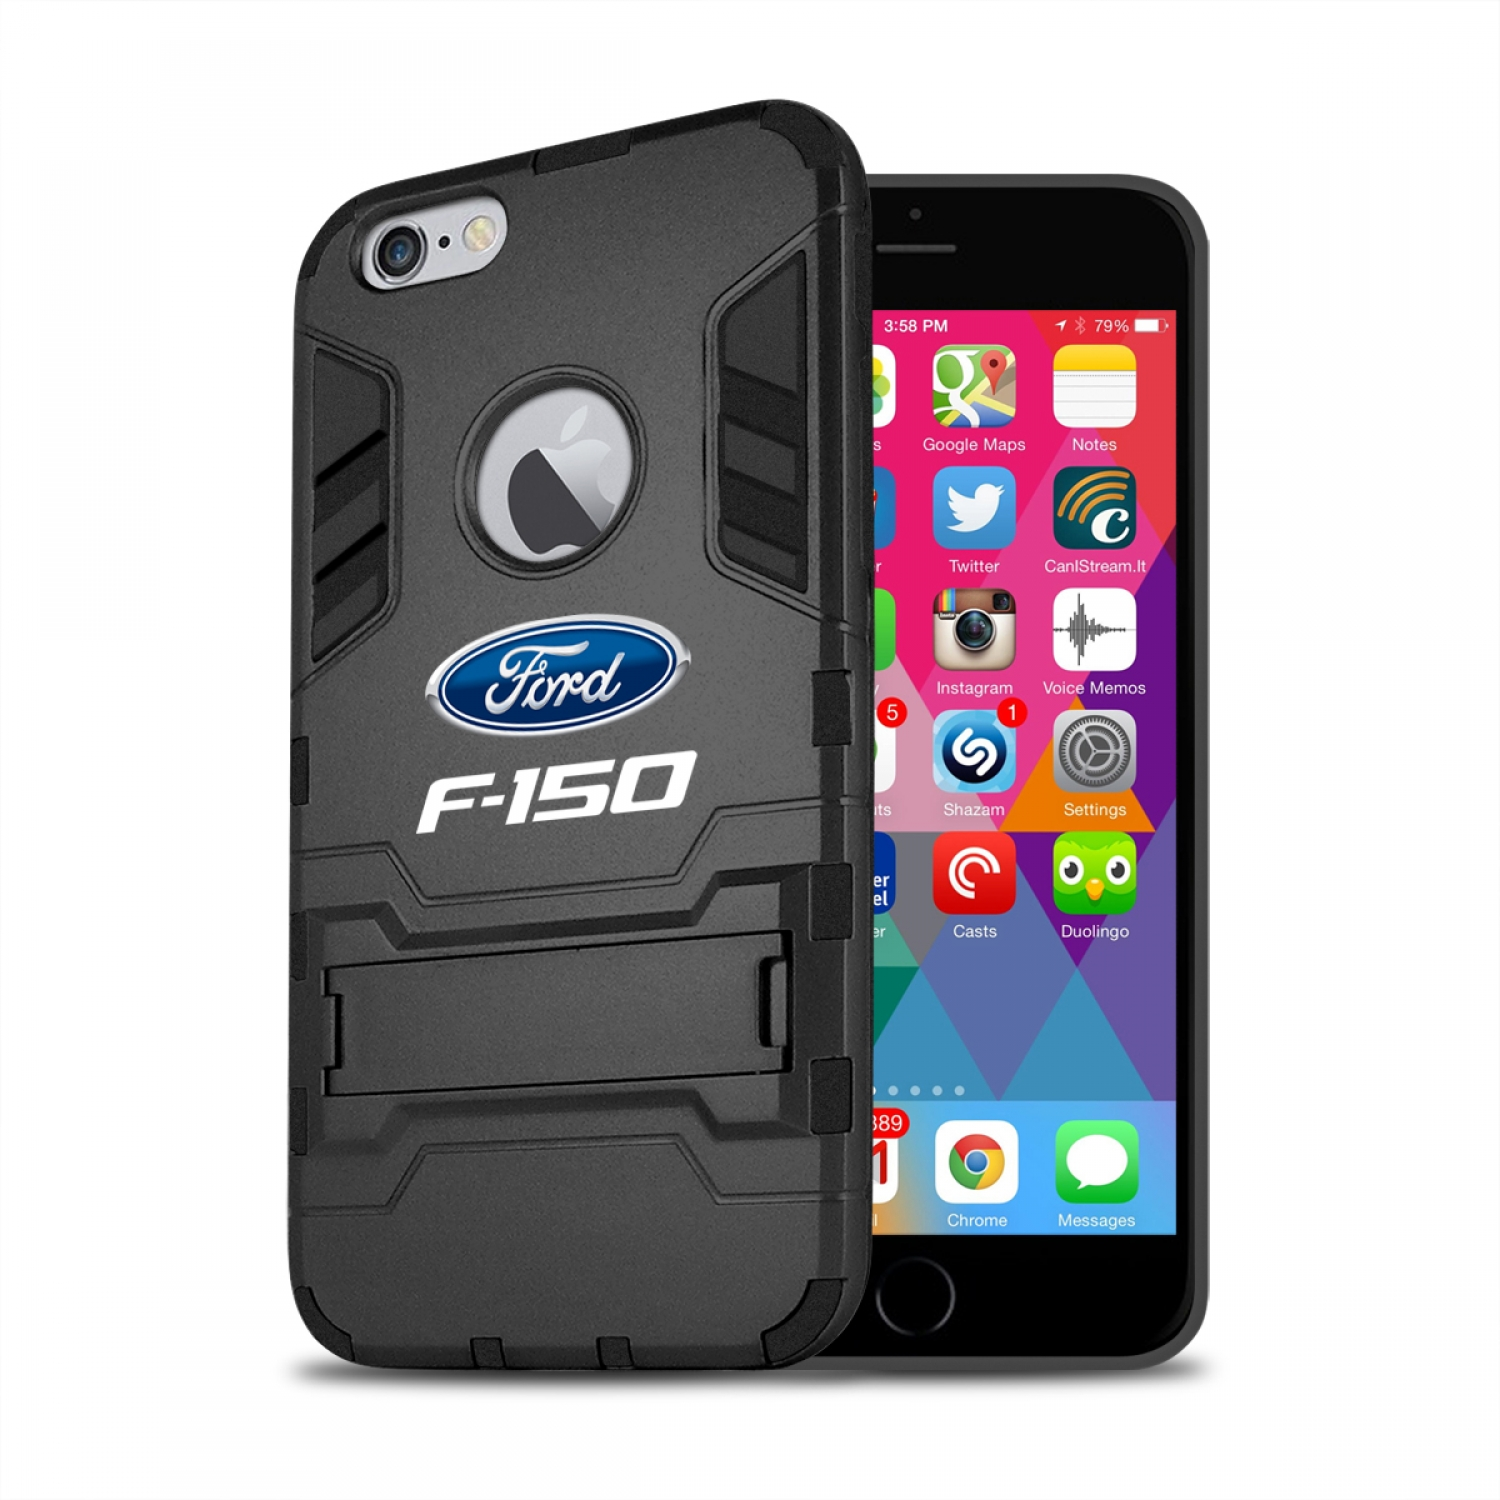 Ford F-150 iPhone 6 6s Shockproof TPU ABS Hybrid Black Phone Case